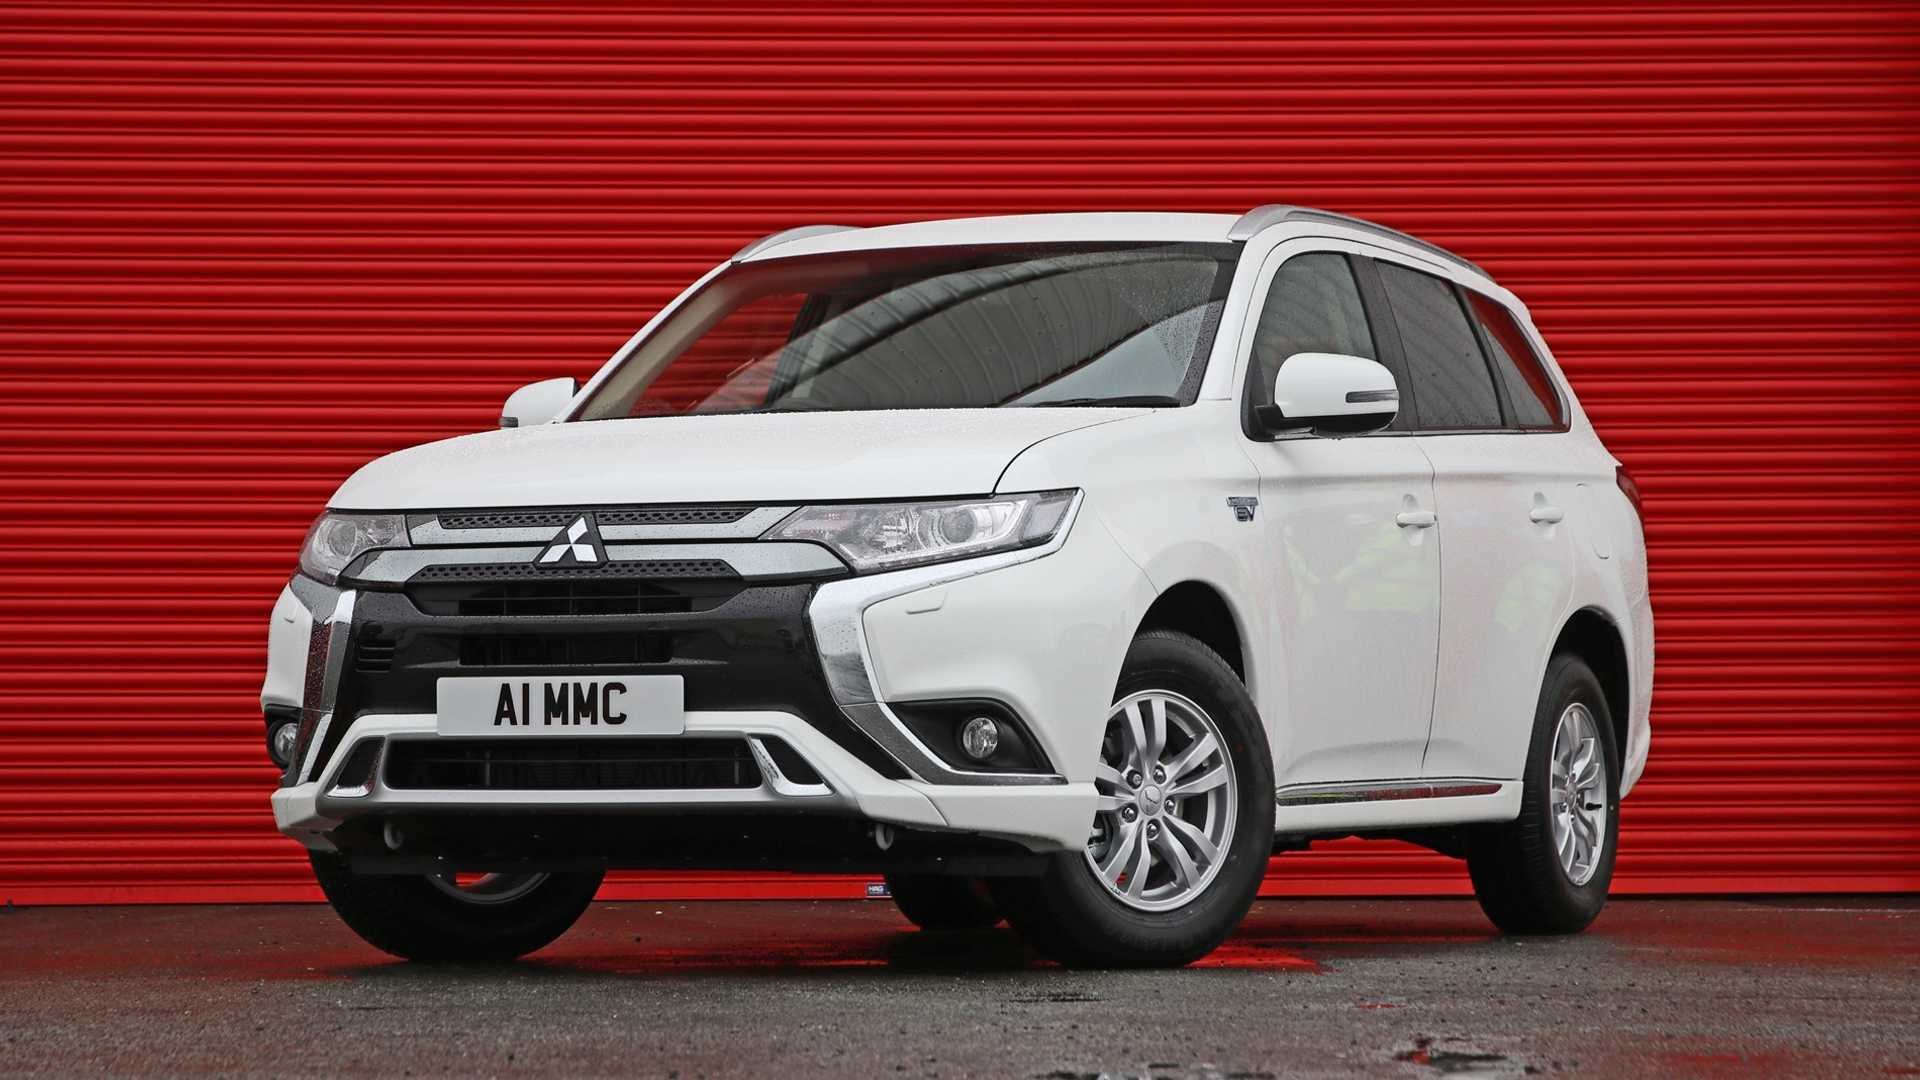 Businesses can buy an Outlander PHEV van for just over £24,000